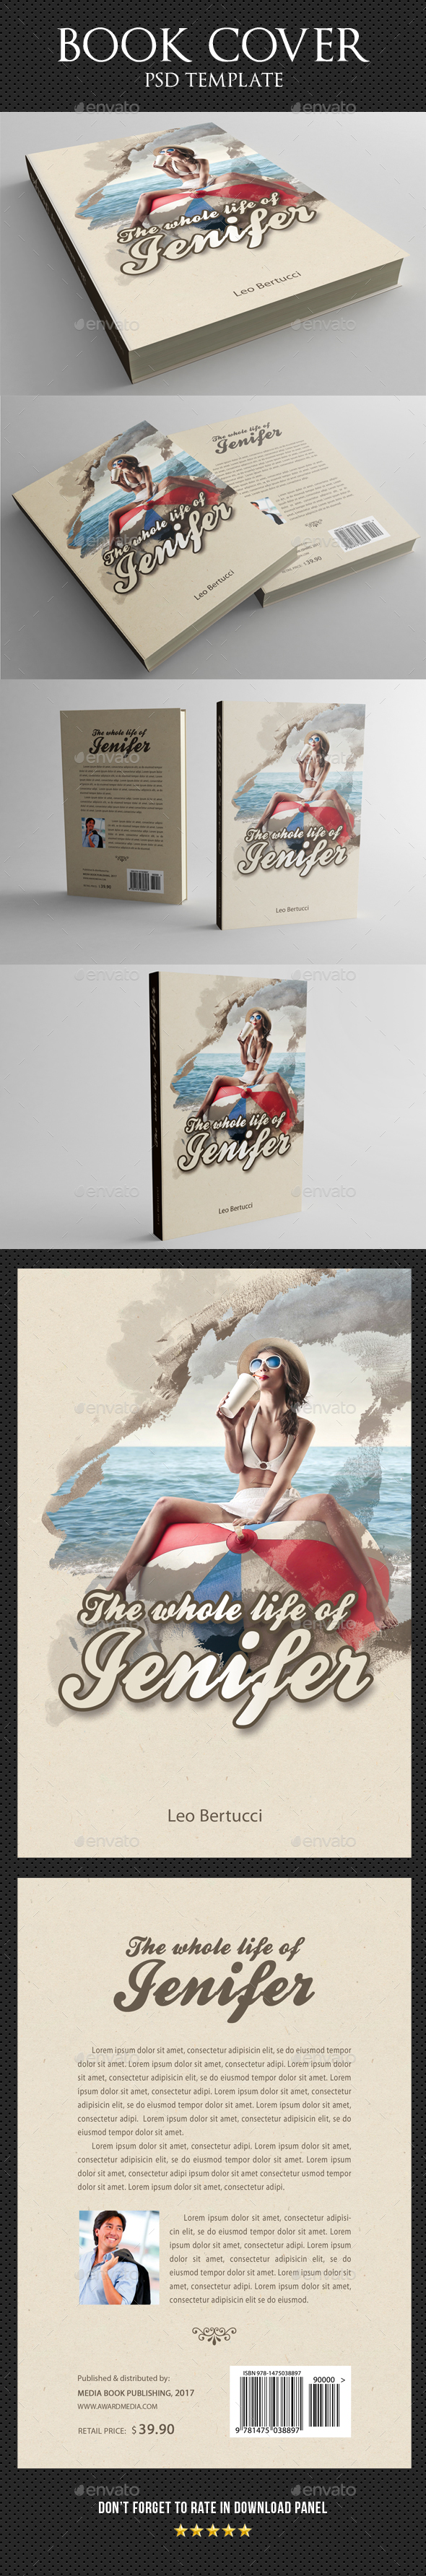 Book Cover Template 26 - Miscellaneous Print Templates